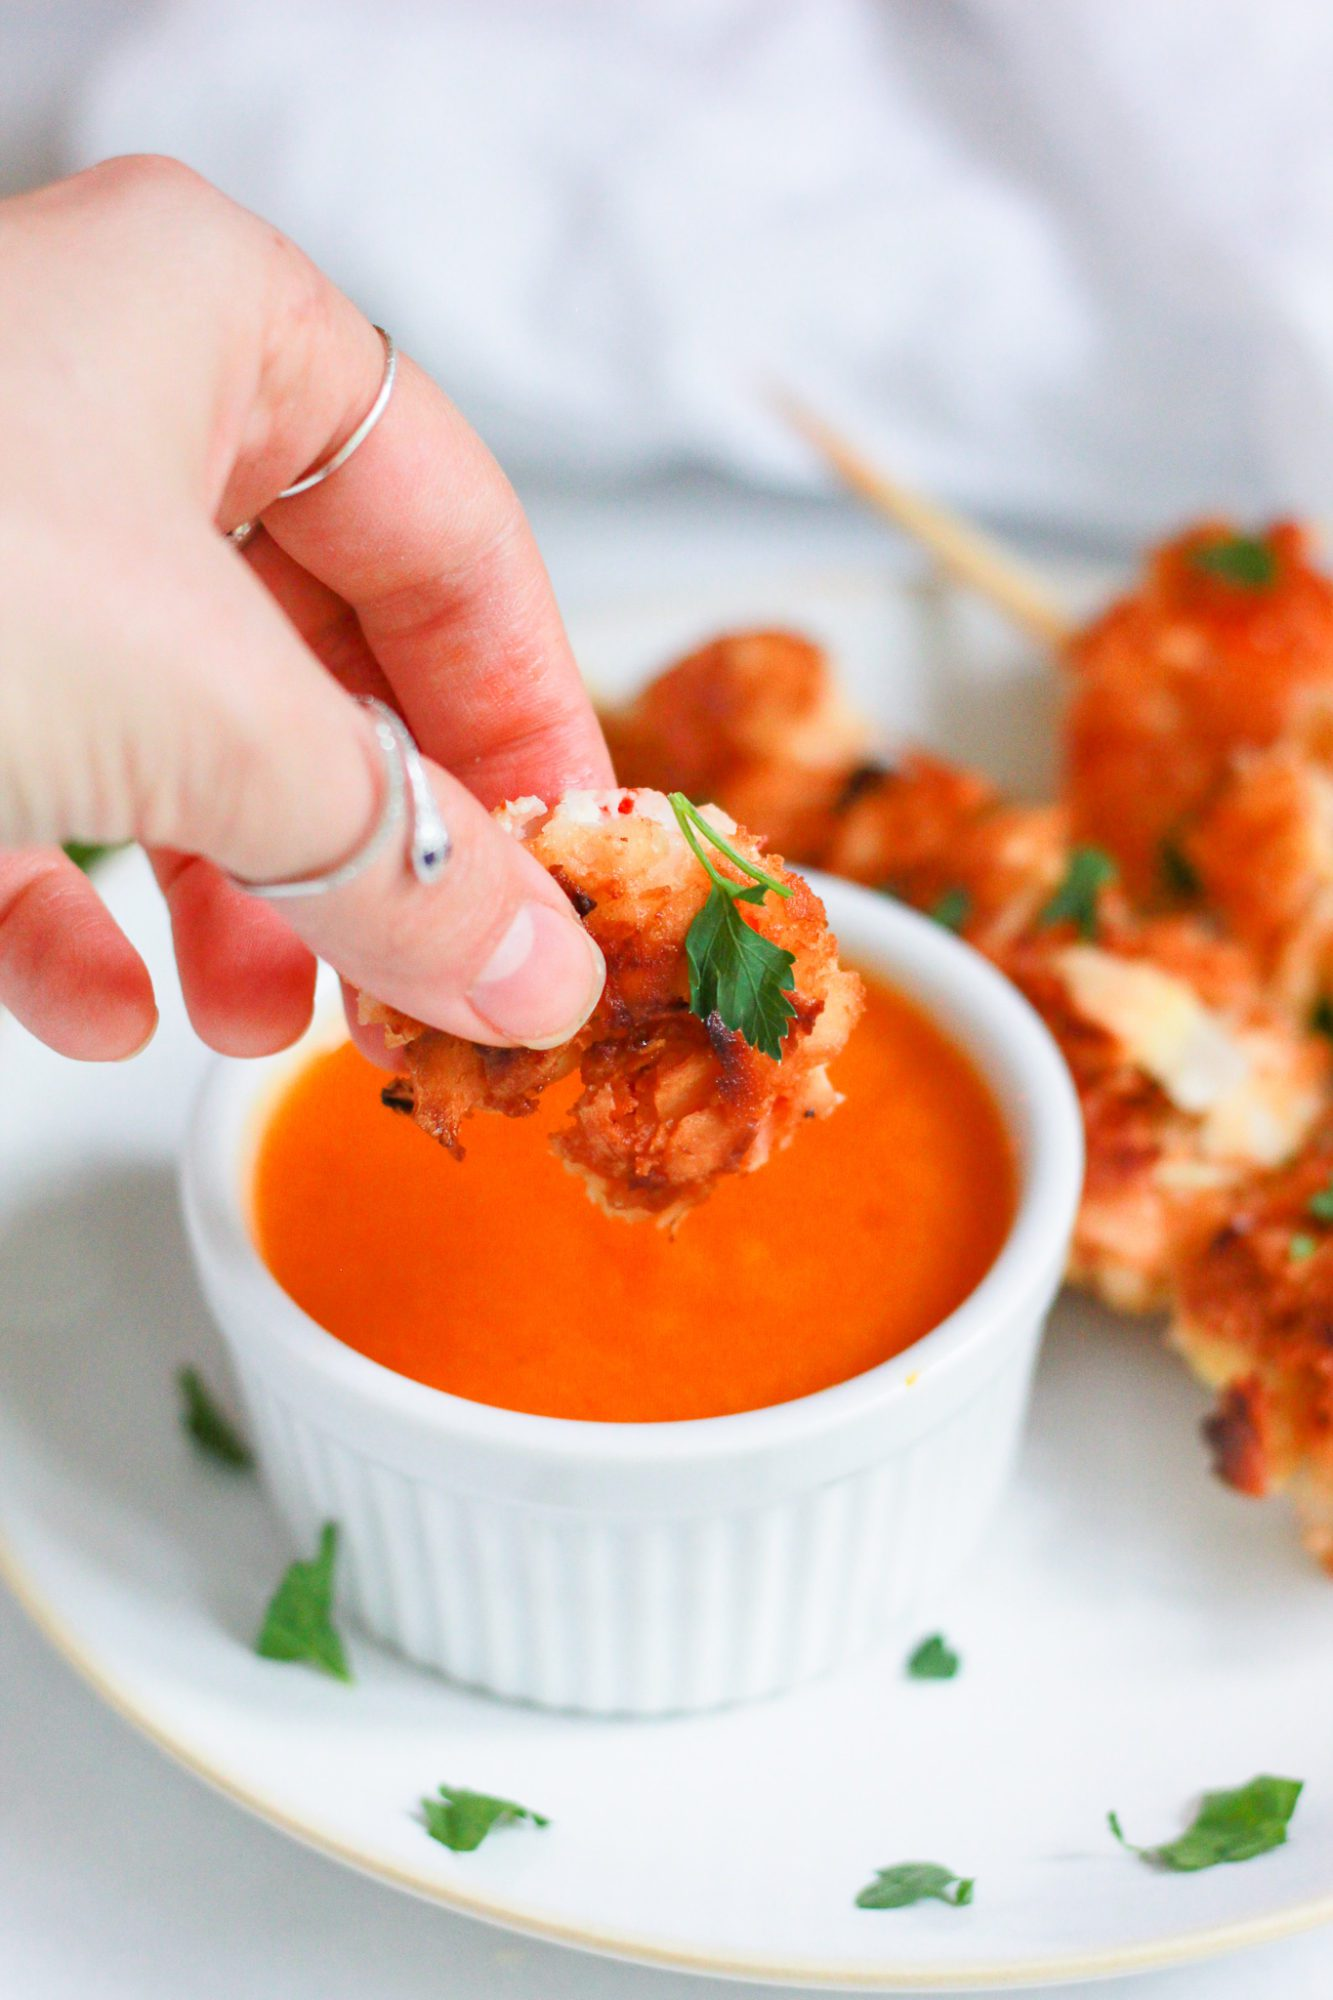 hand dipping coconut shrimp into apricot dipping sauce